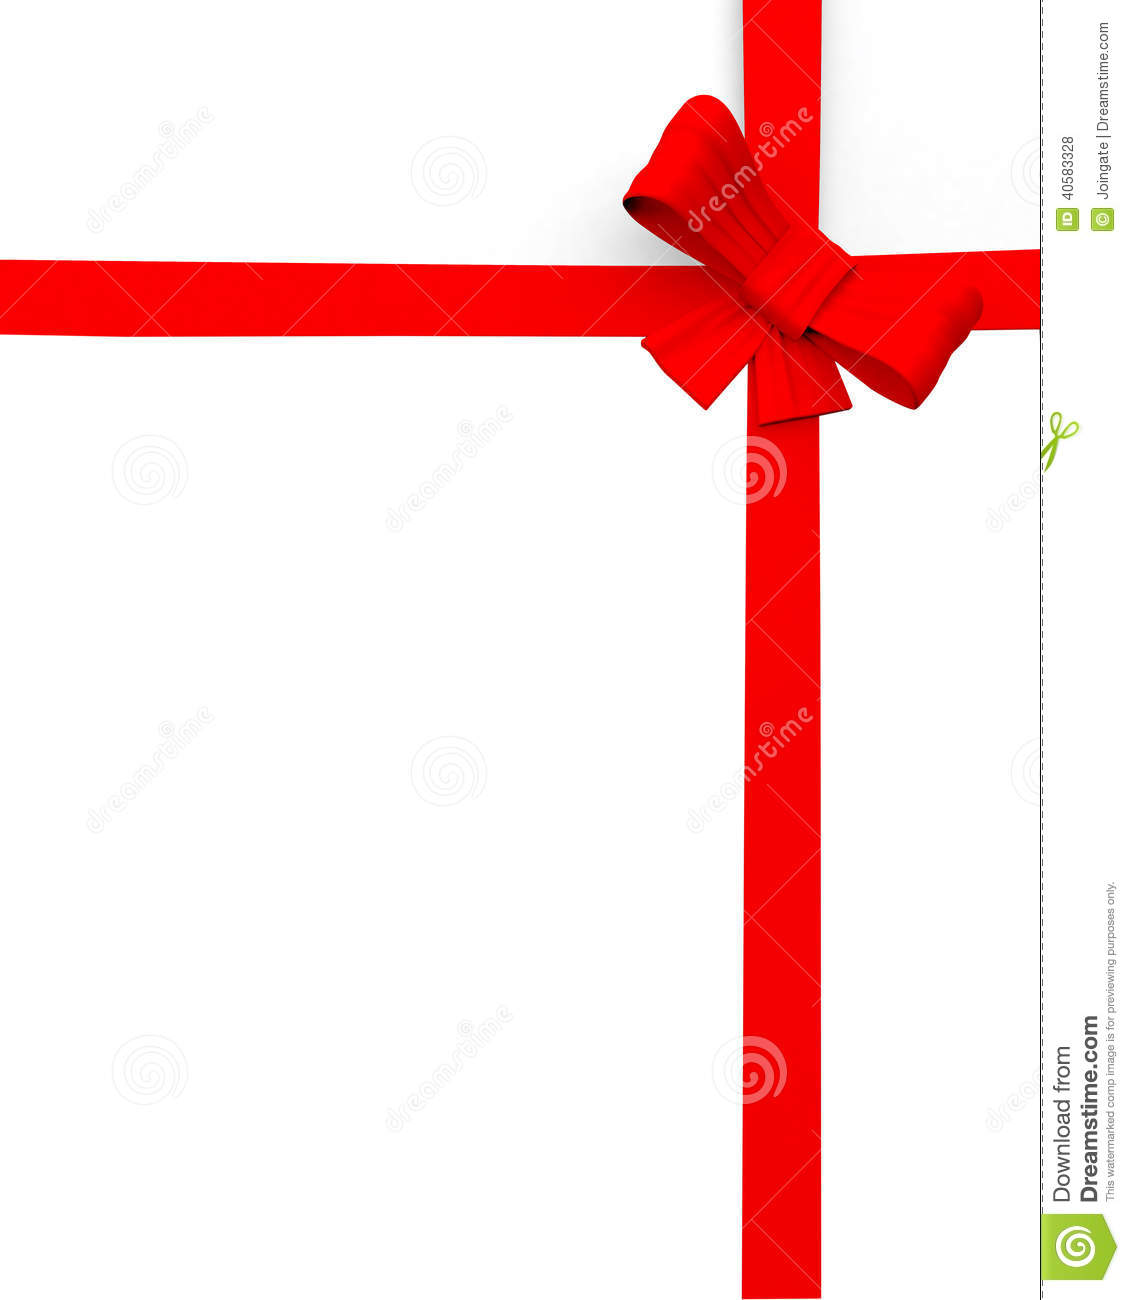 Edge Of Page Or Website Present Ribbon Graphic Design Stock with clipart edge design intended for your inspiration